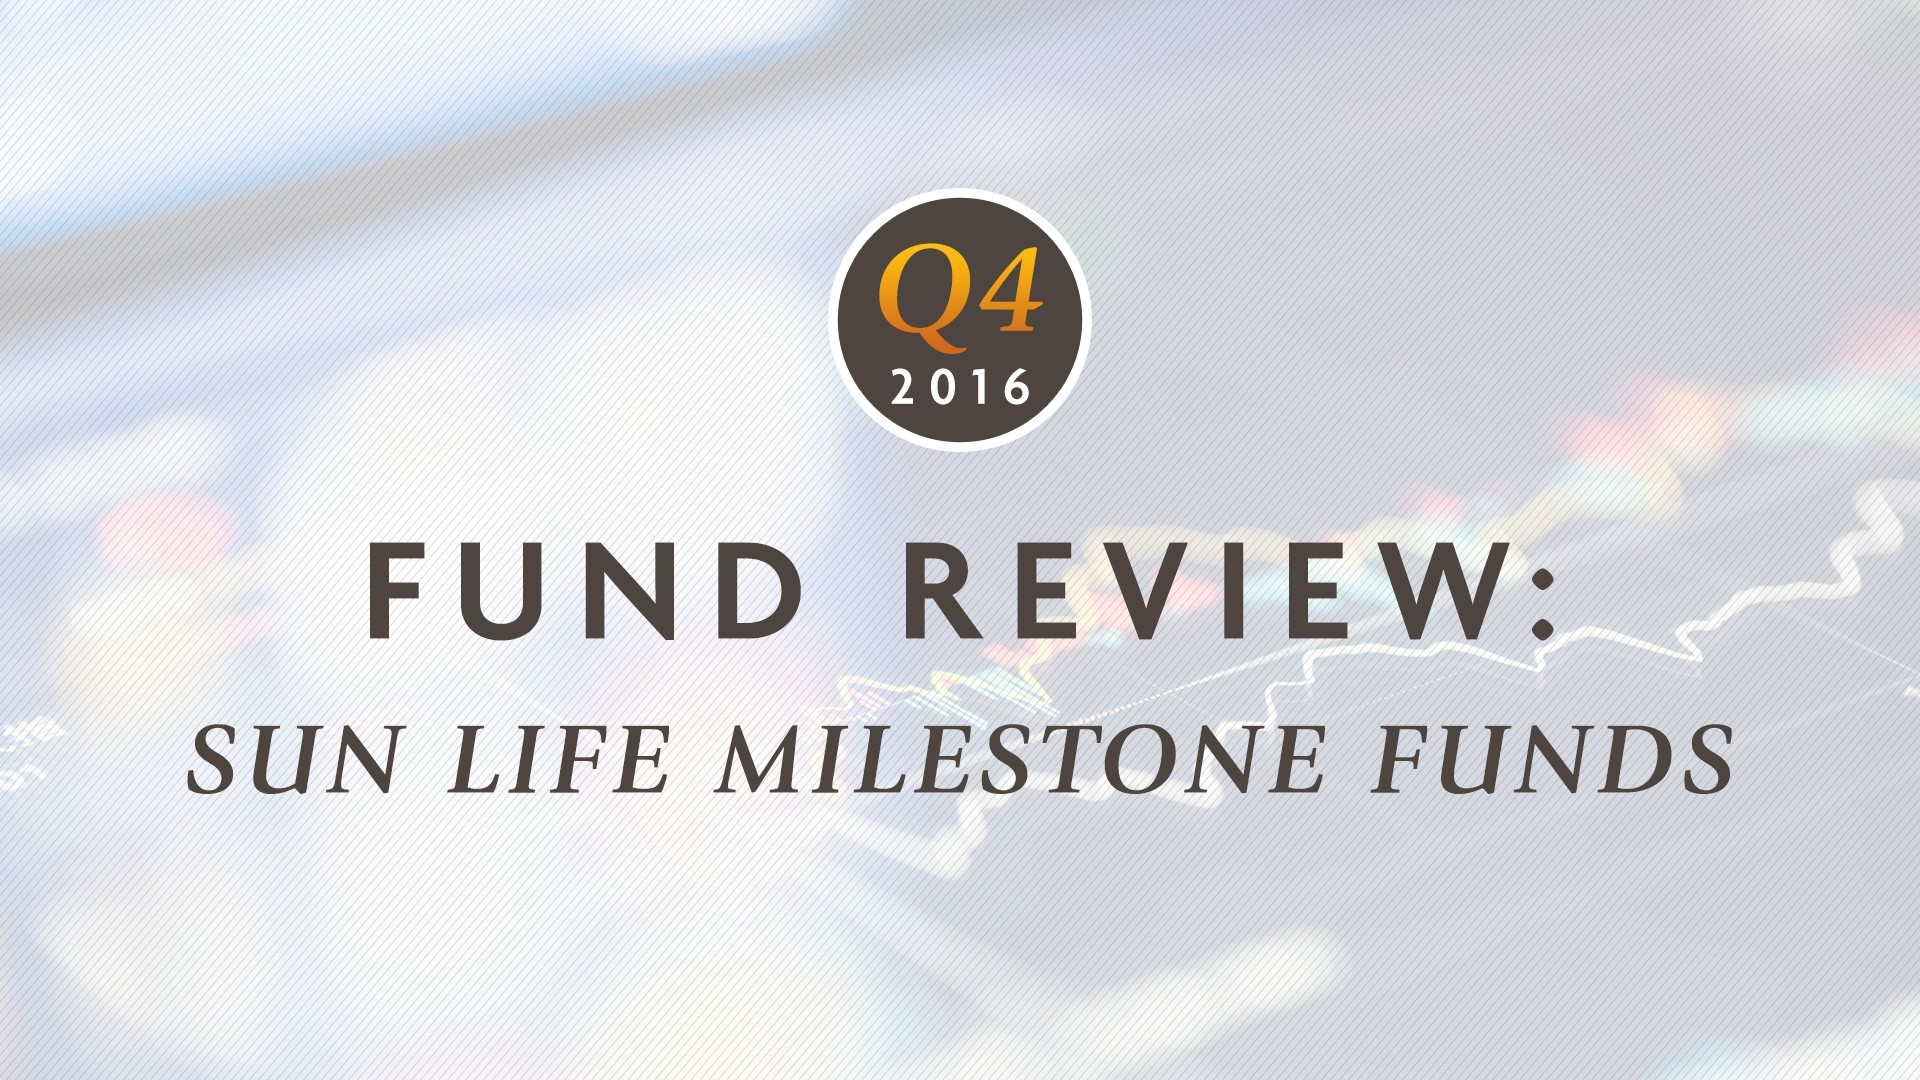 Q4 2016 | Fund review: Sun Life Milestone Funds